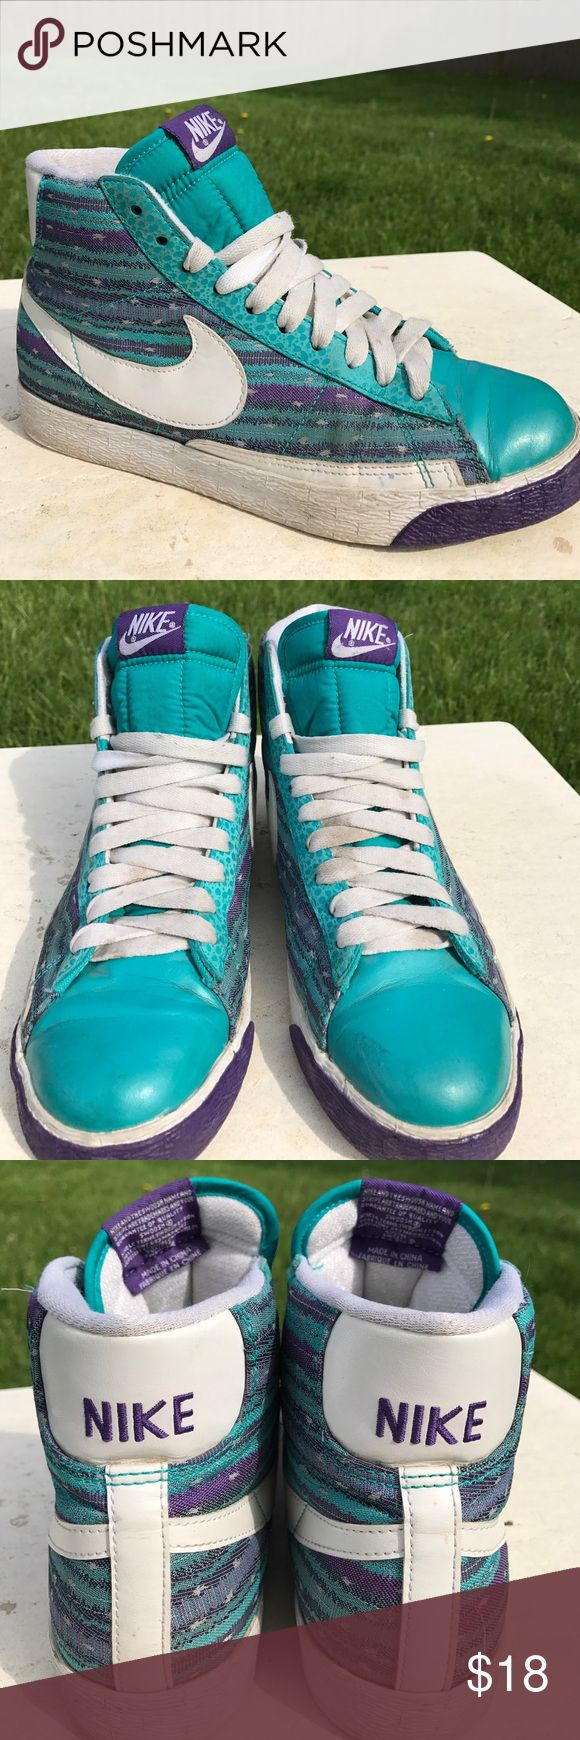 Nike Blazer Tribal Print Hightops These rare Nike Blazers are a size 8.5 in WOMENS.  These are definitely a statement shoe!  I love the bright turquoise and the Tribal print on the sides.  These are in good condition.  Laces would probably need to be replaced :) Nike Shoes Sneakers